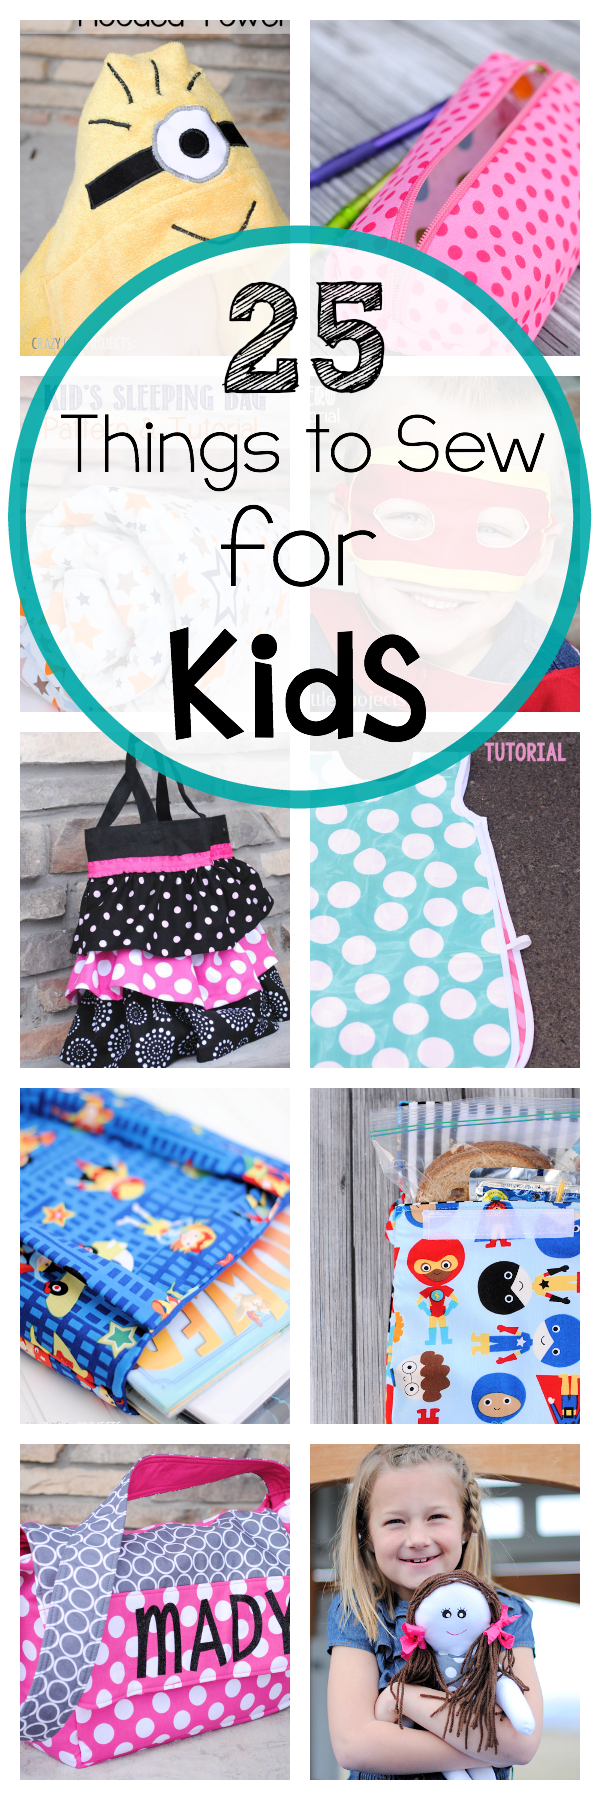 Sewing Patterns For Kids 25 Sewing Patterns For Kids Crazy Little Projects